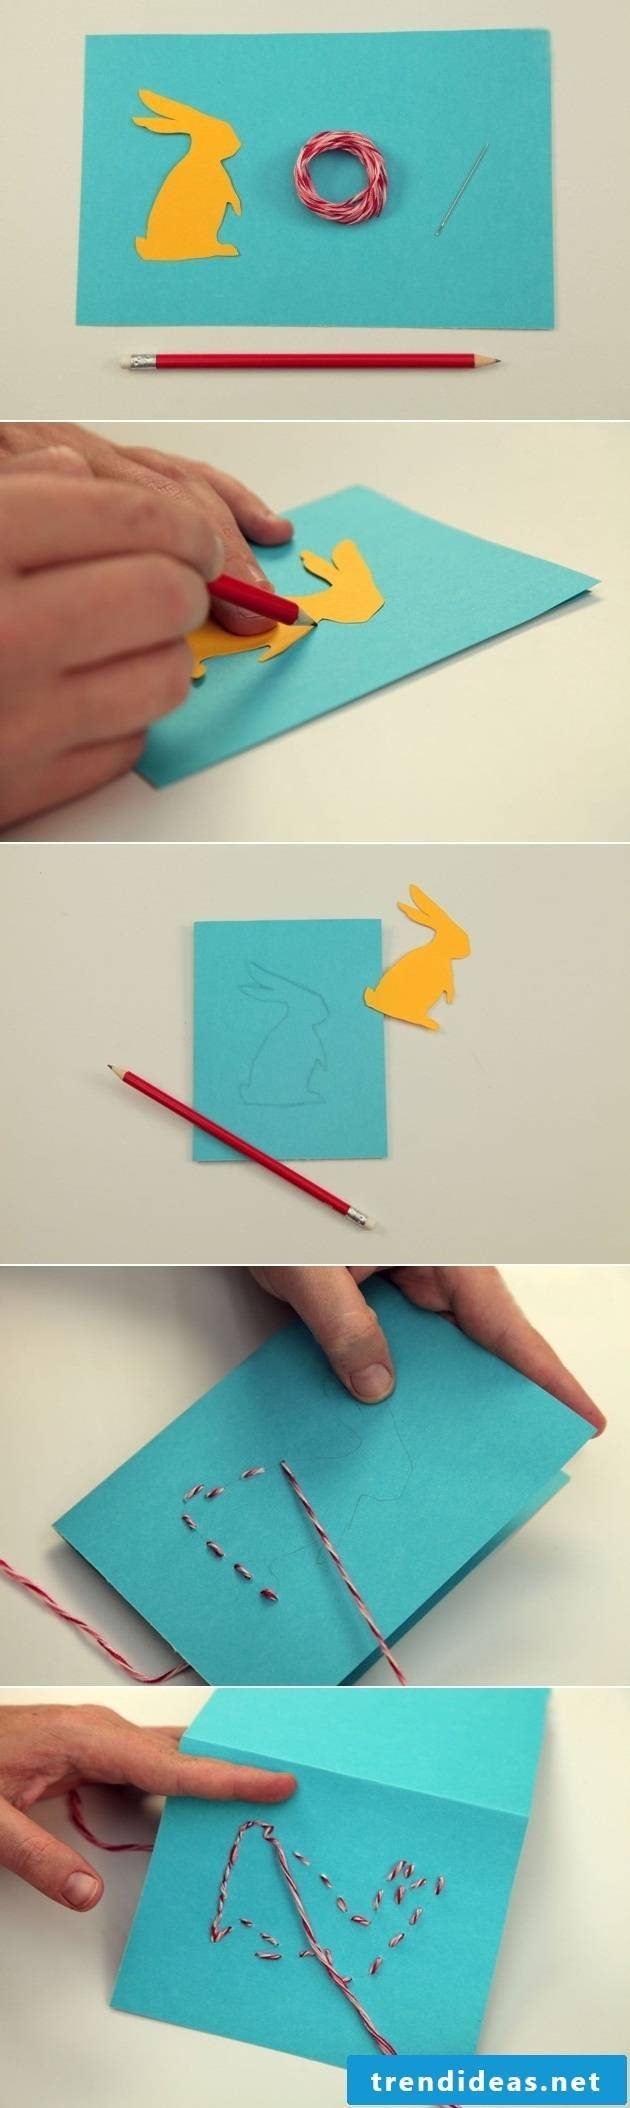 Easter cards crafting tutorial step by step